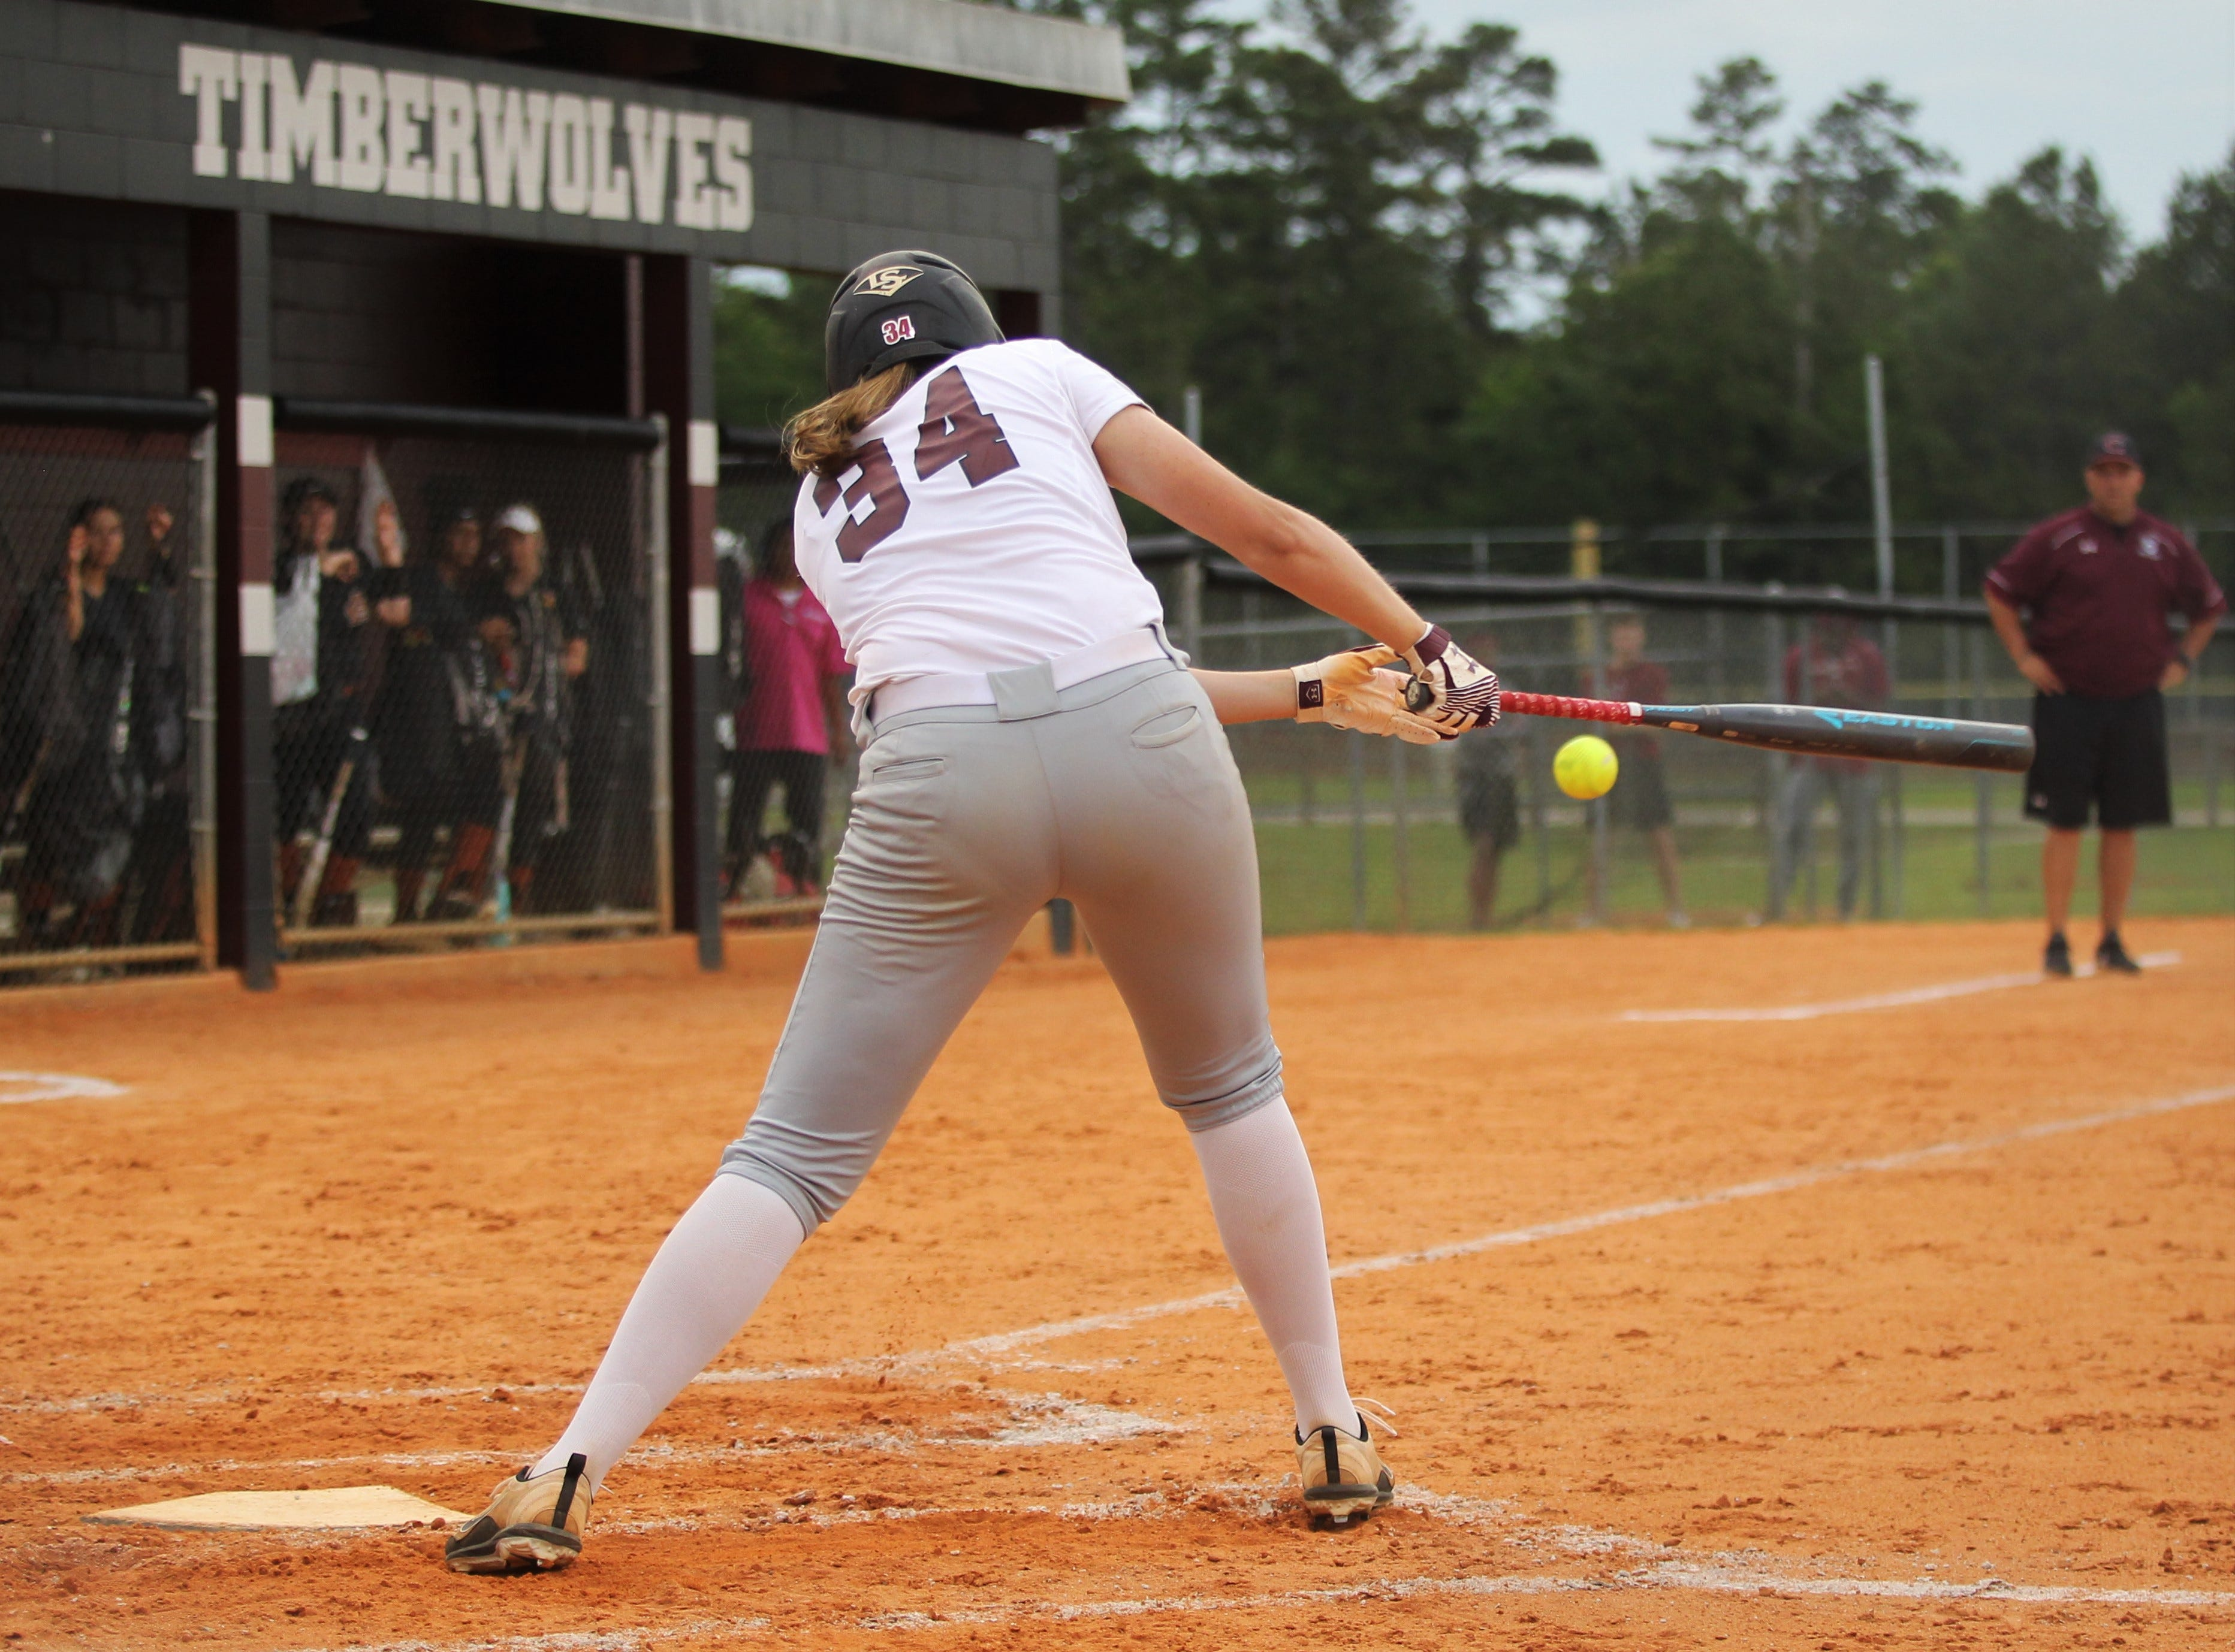 Chiles sophomore Ashlynn Pauwels bats as the Timberwolves beat Atlantic Coast 6-4 during a Region 1-8A quarterfinal softball game on Wednesday, May 8, 2019.